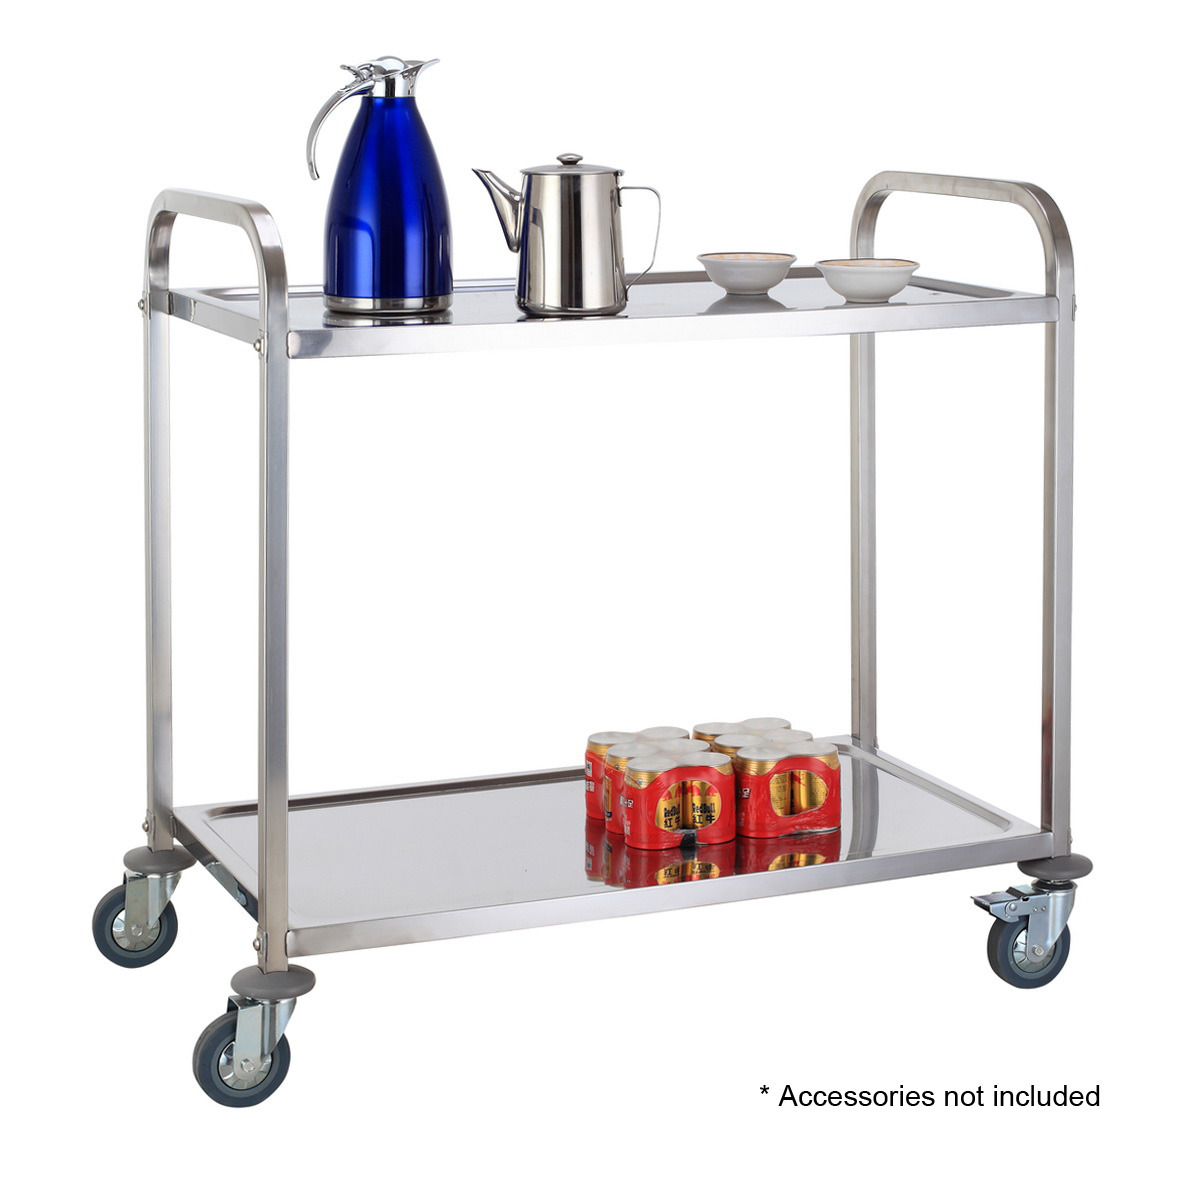 2 tier stainless steel kitchen dining trolley serving